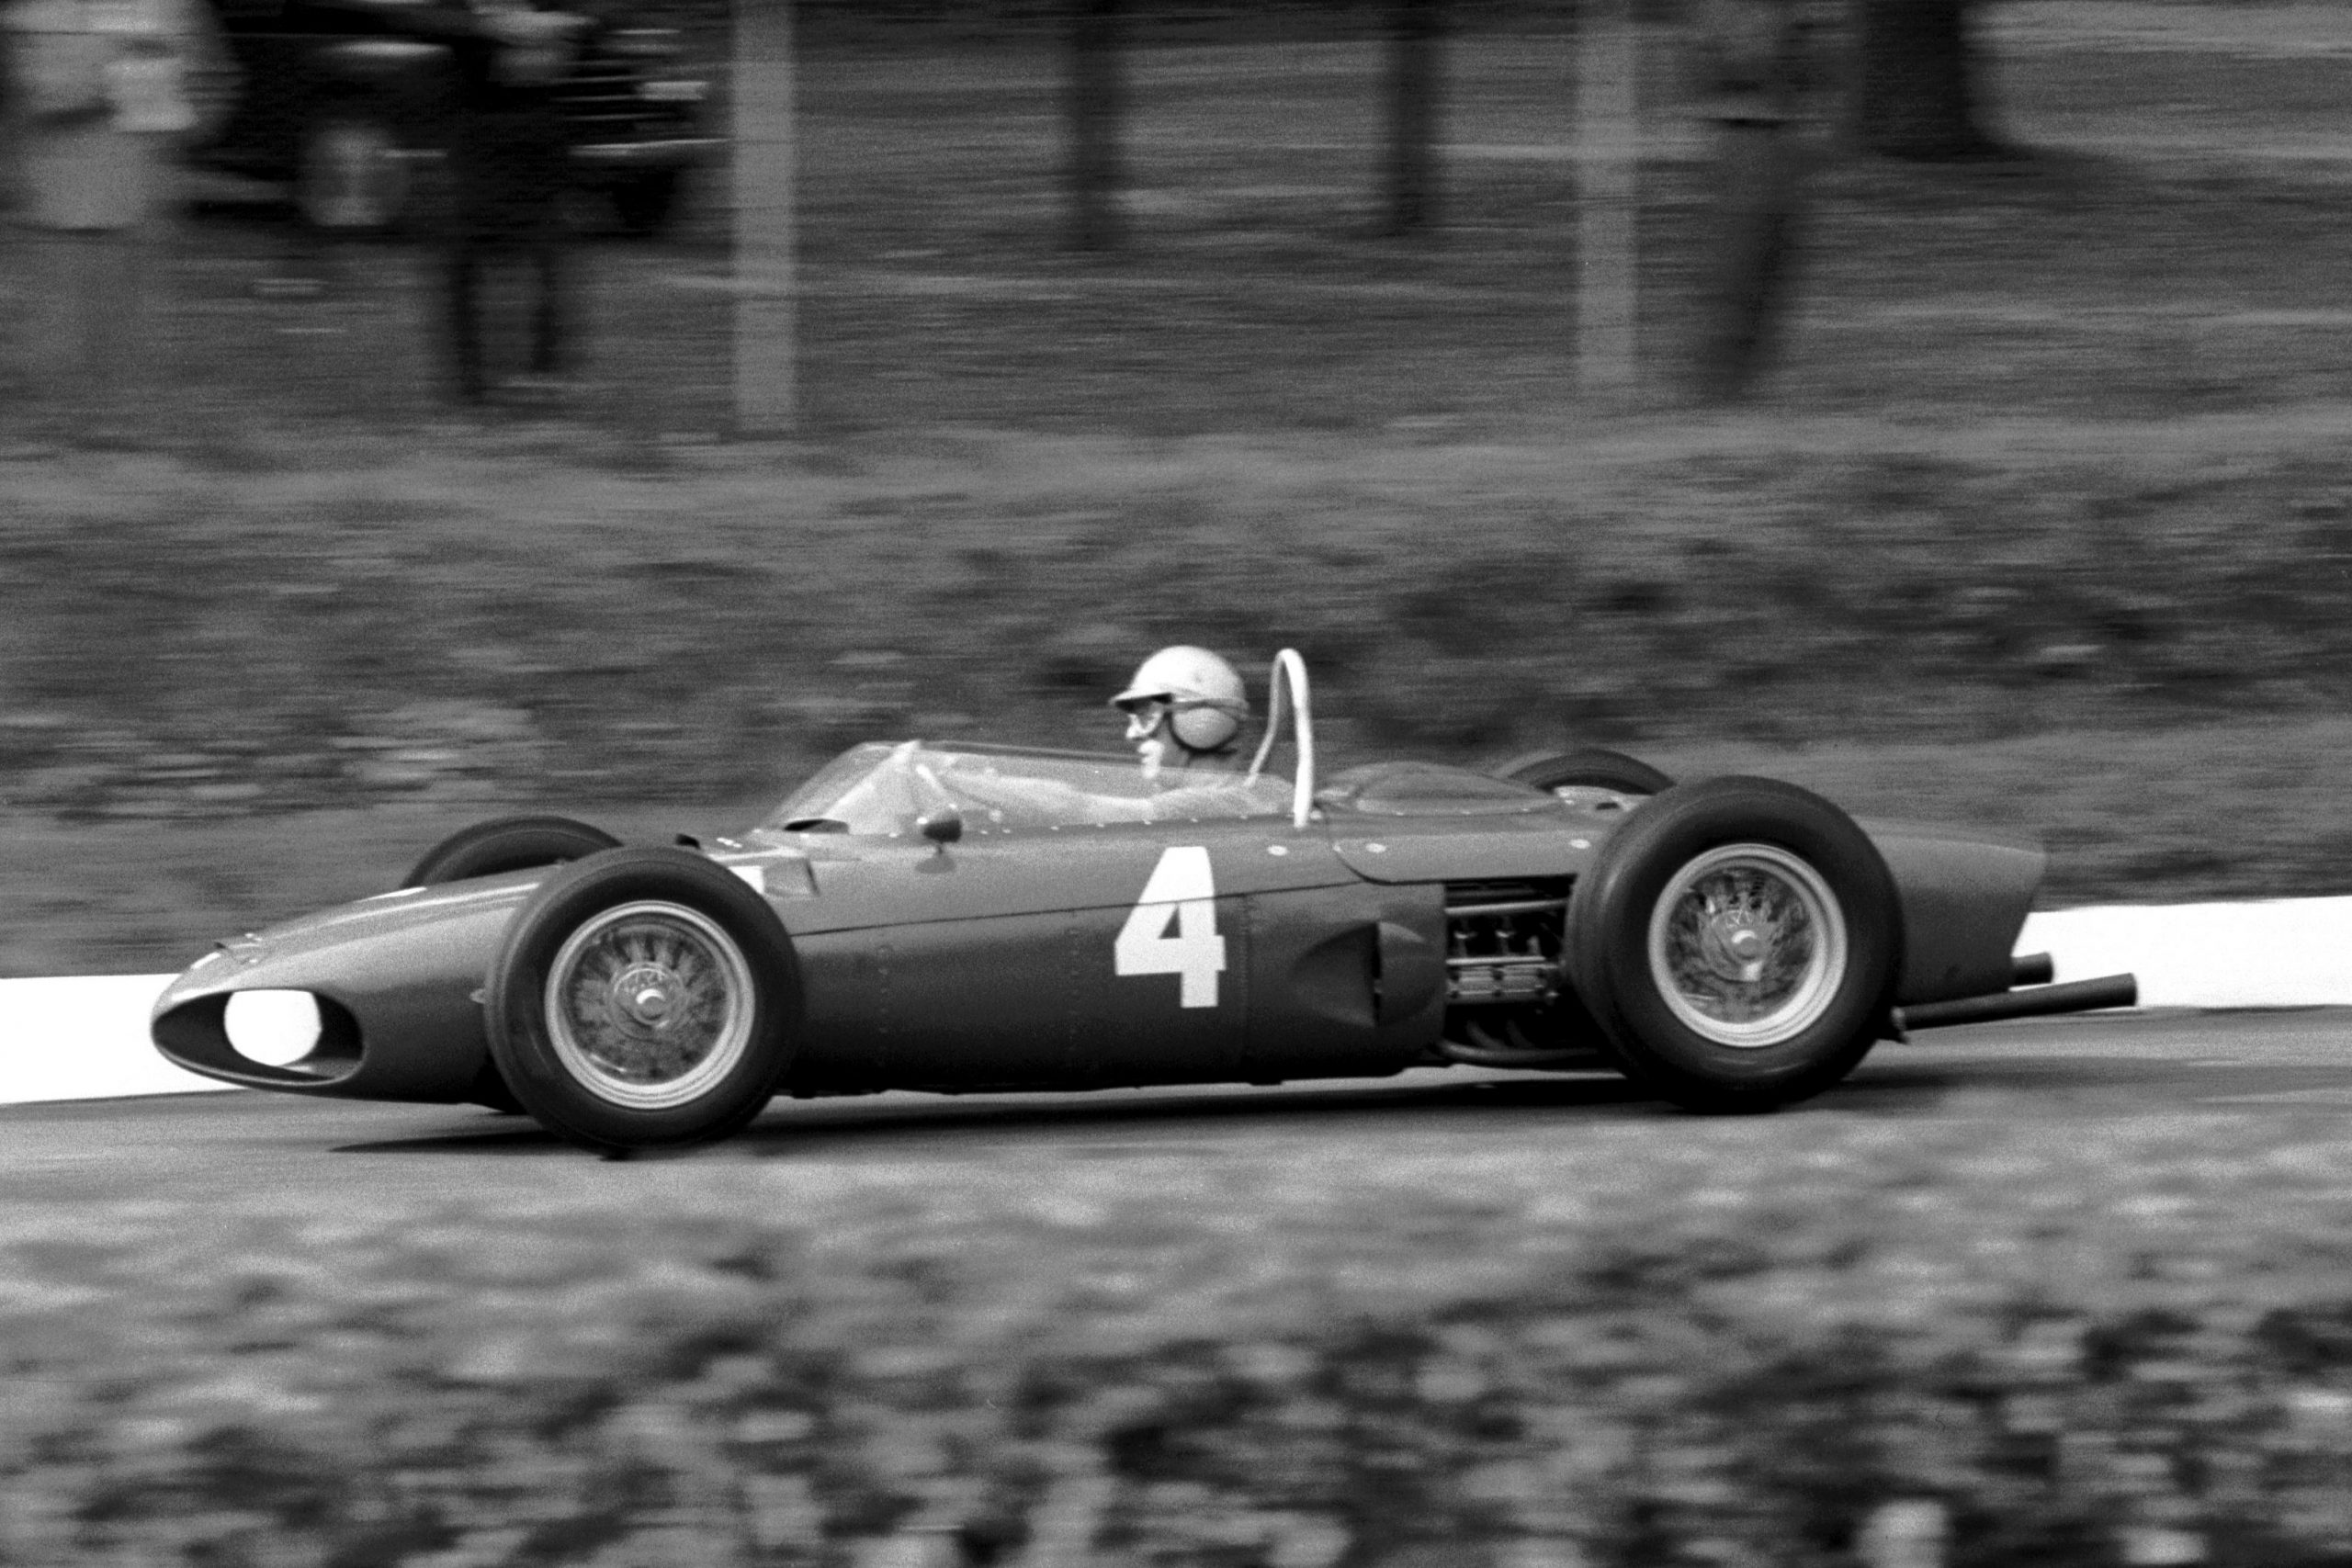 Wolfgang von trips Ferrari 156. He was involved in a horrific crash on the approach to the Parabolica that tragically killed him and fourteen spectators.